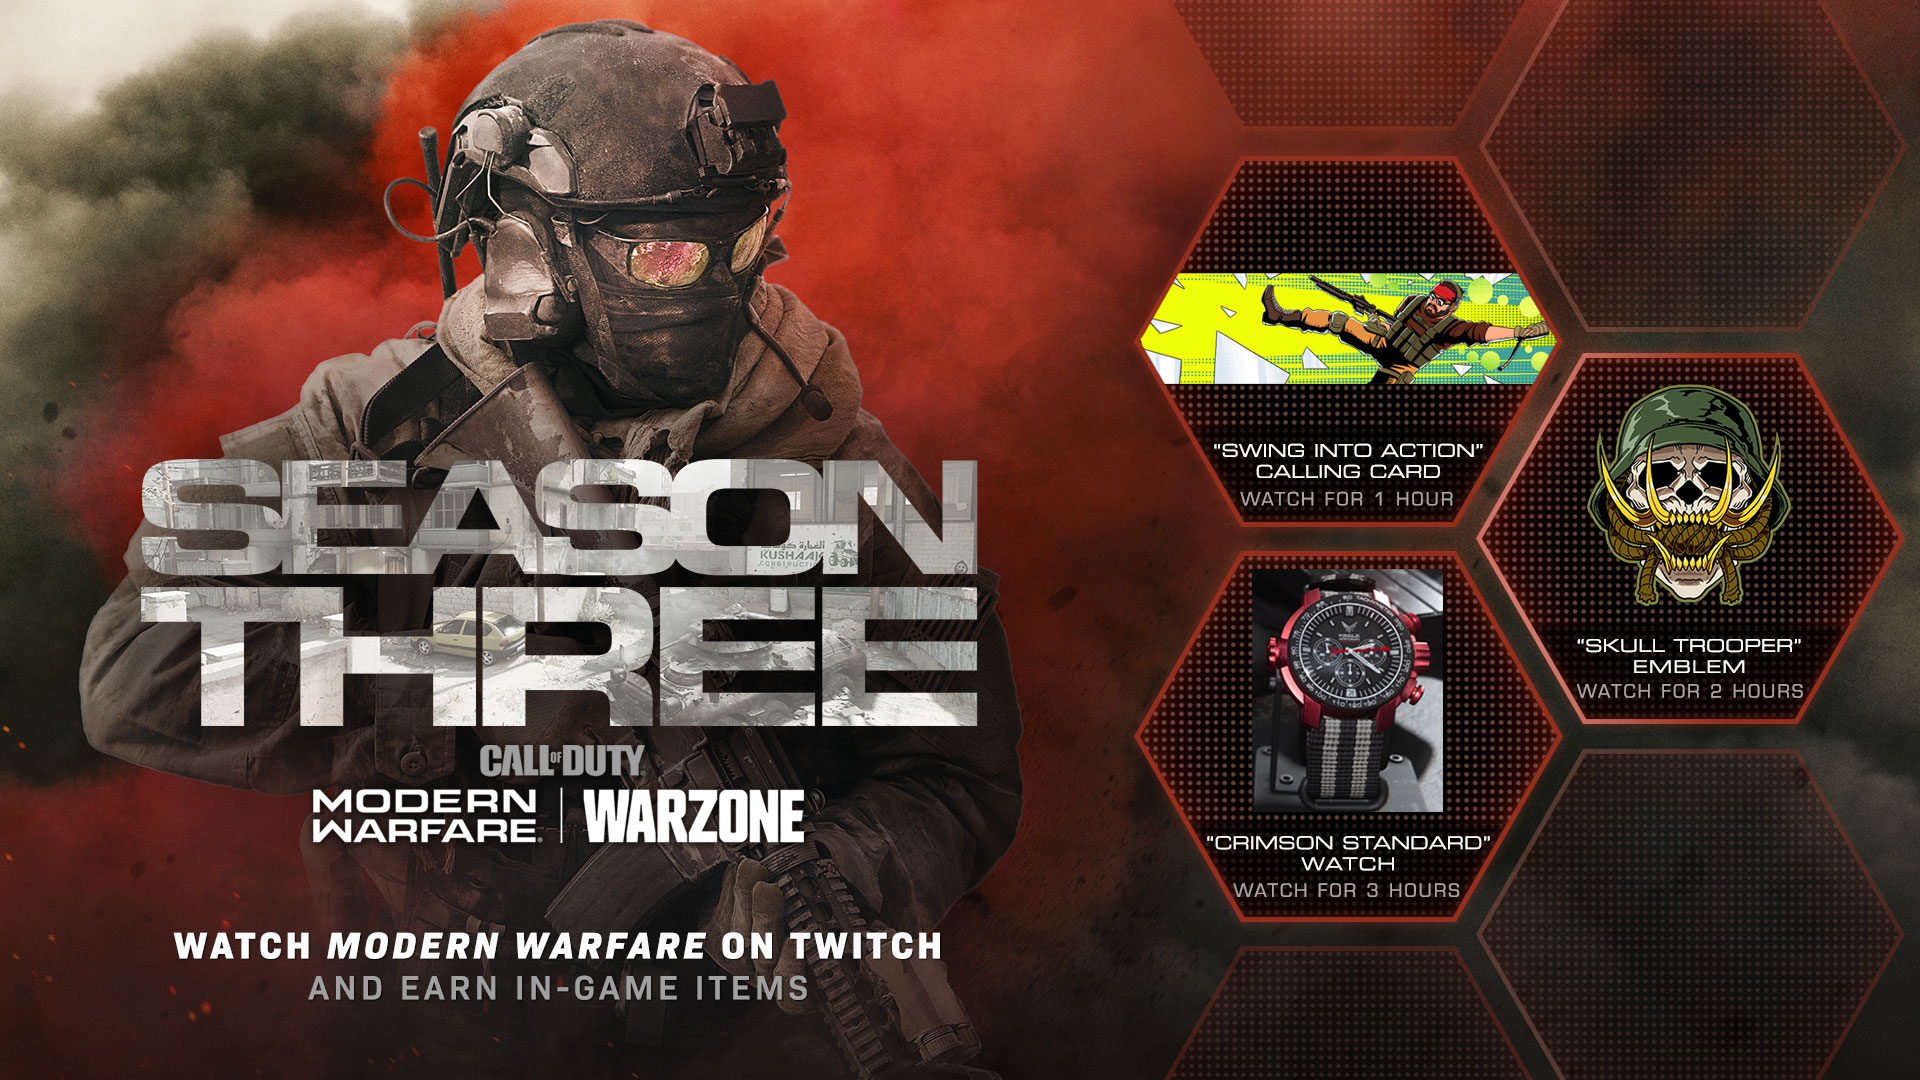 Earn Rewards to equip in Modern Warfare® Multiplayer, Special Ops, and Warzone by Watching Twitch [Update - Event Ended] - Image 1